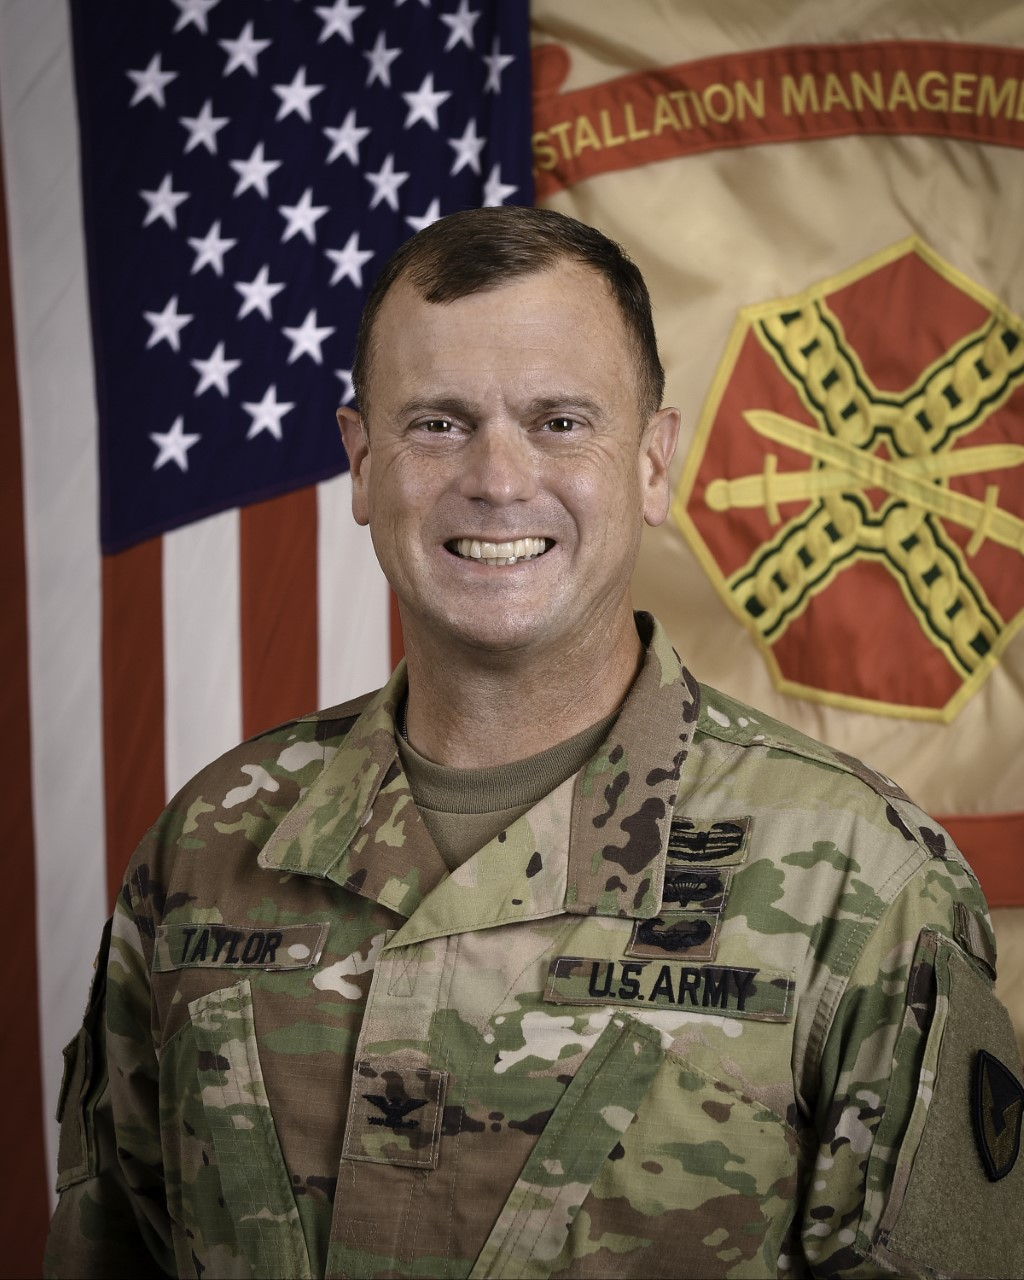 Col. Rhett Taylor, Military Rep., Fort Sill, OK